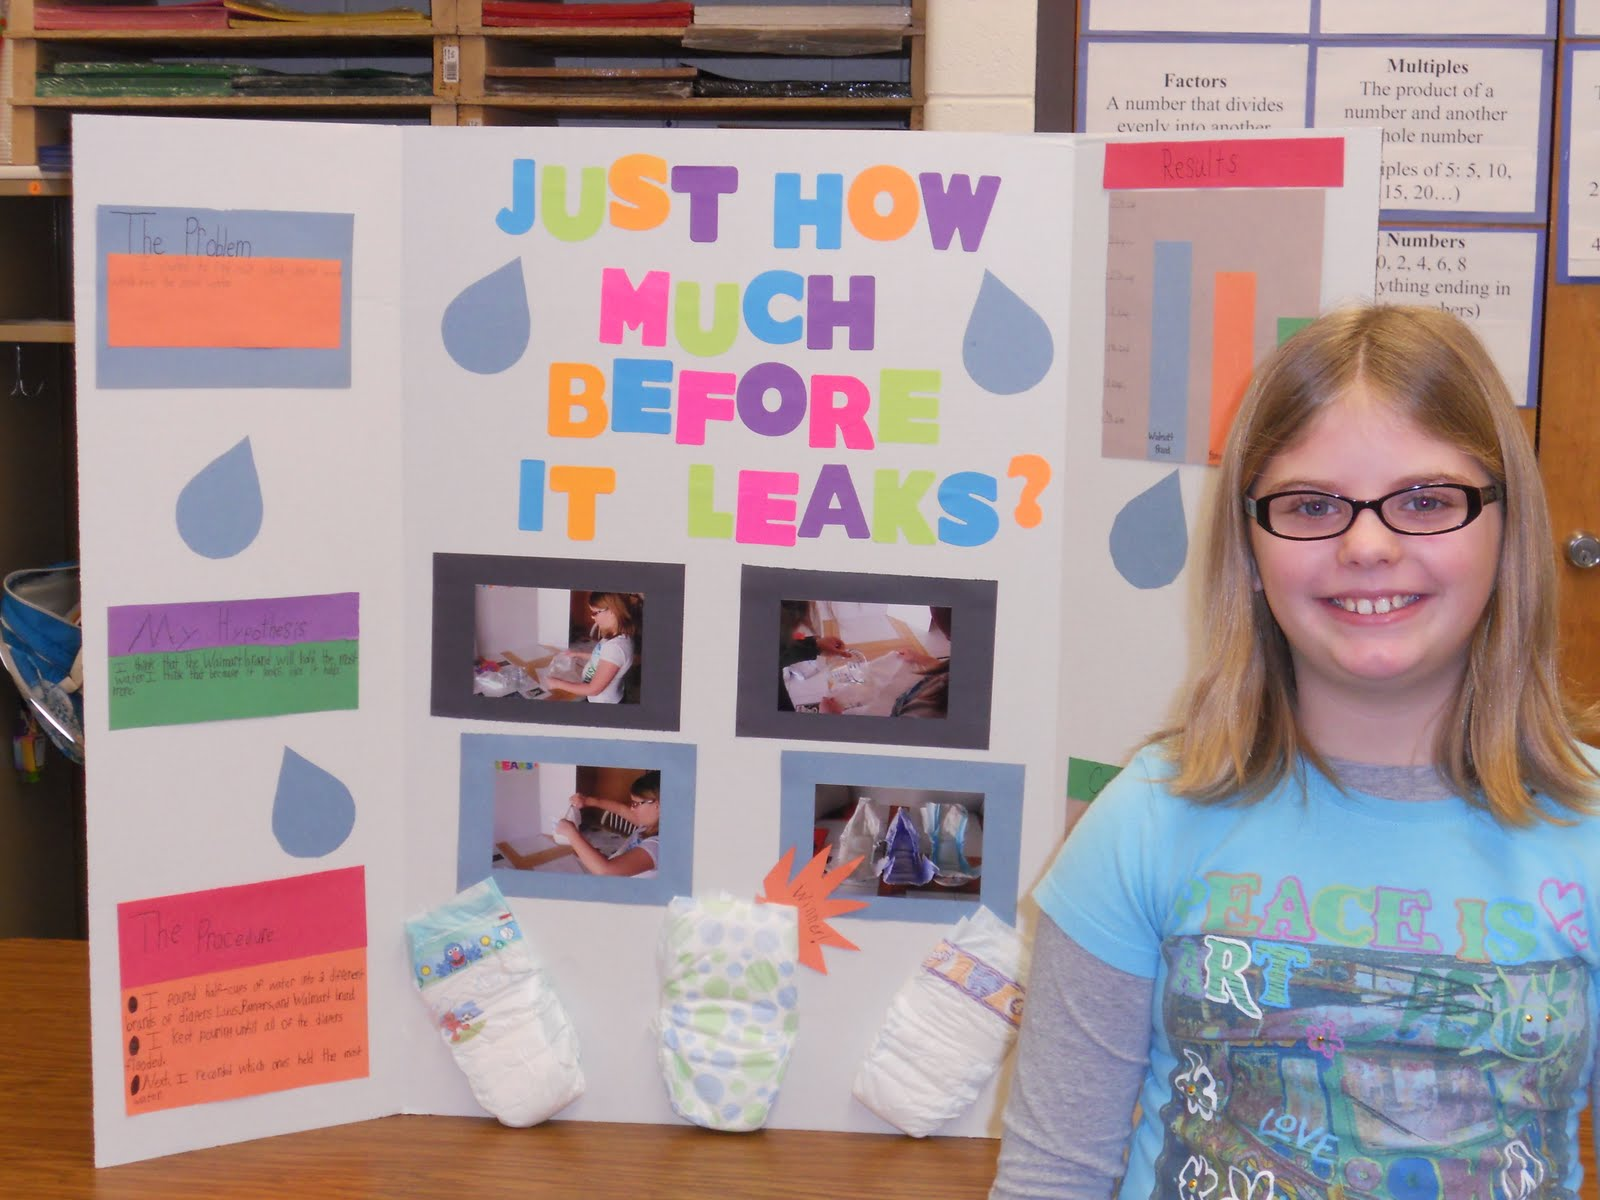 laundry detergent science fair project